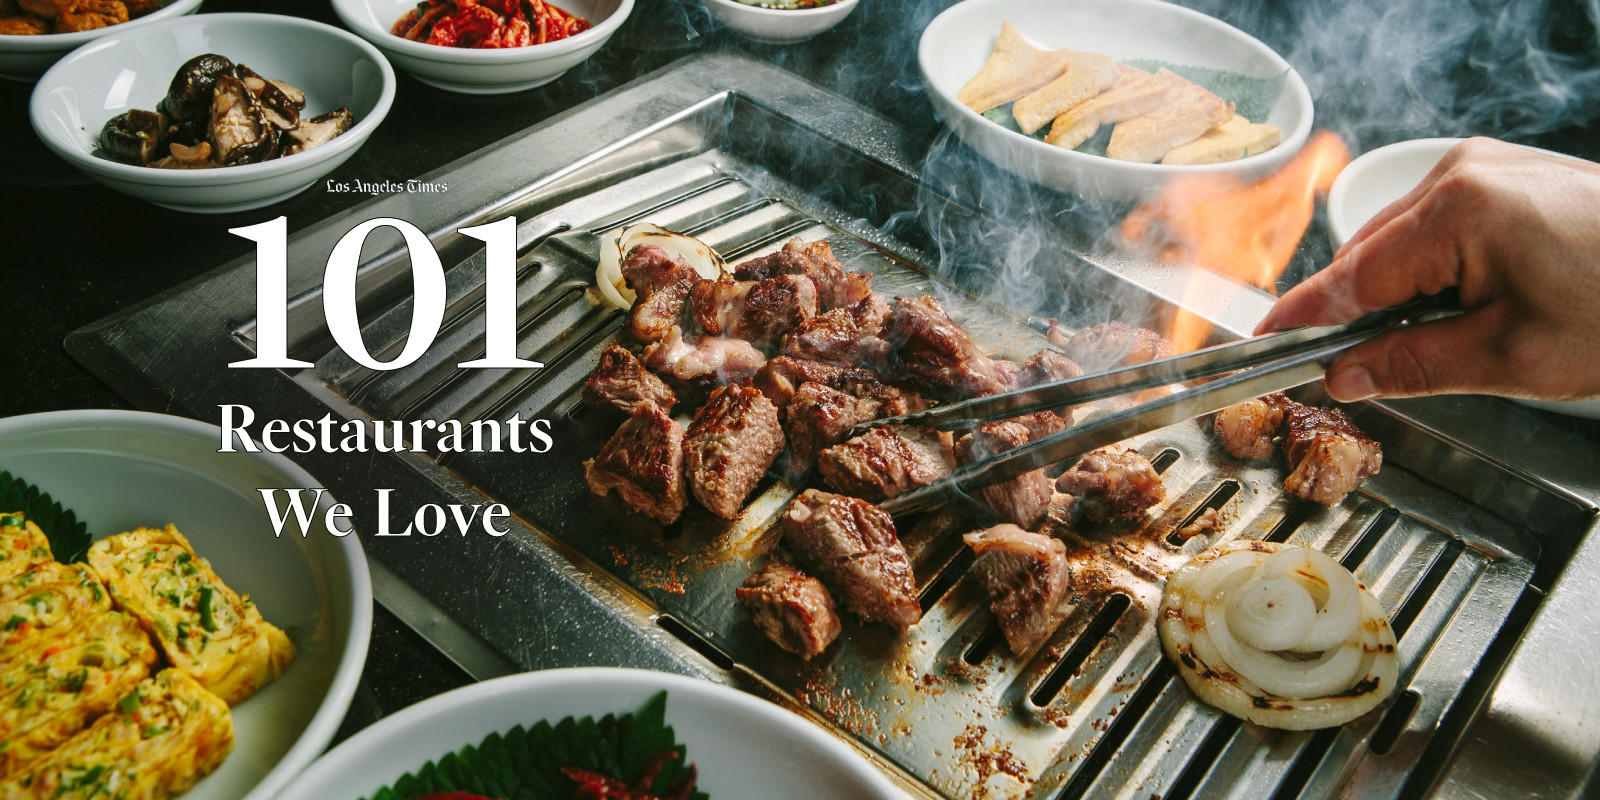 101 Restaurants We Love